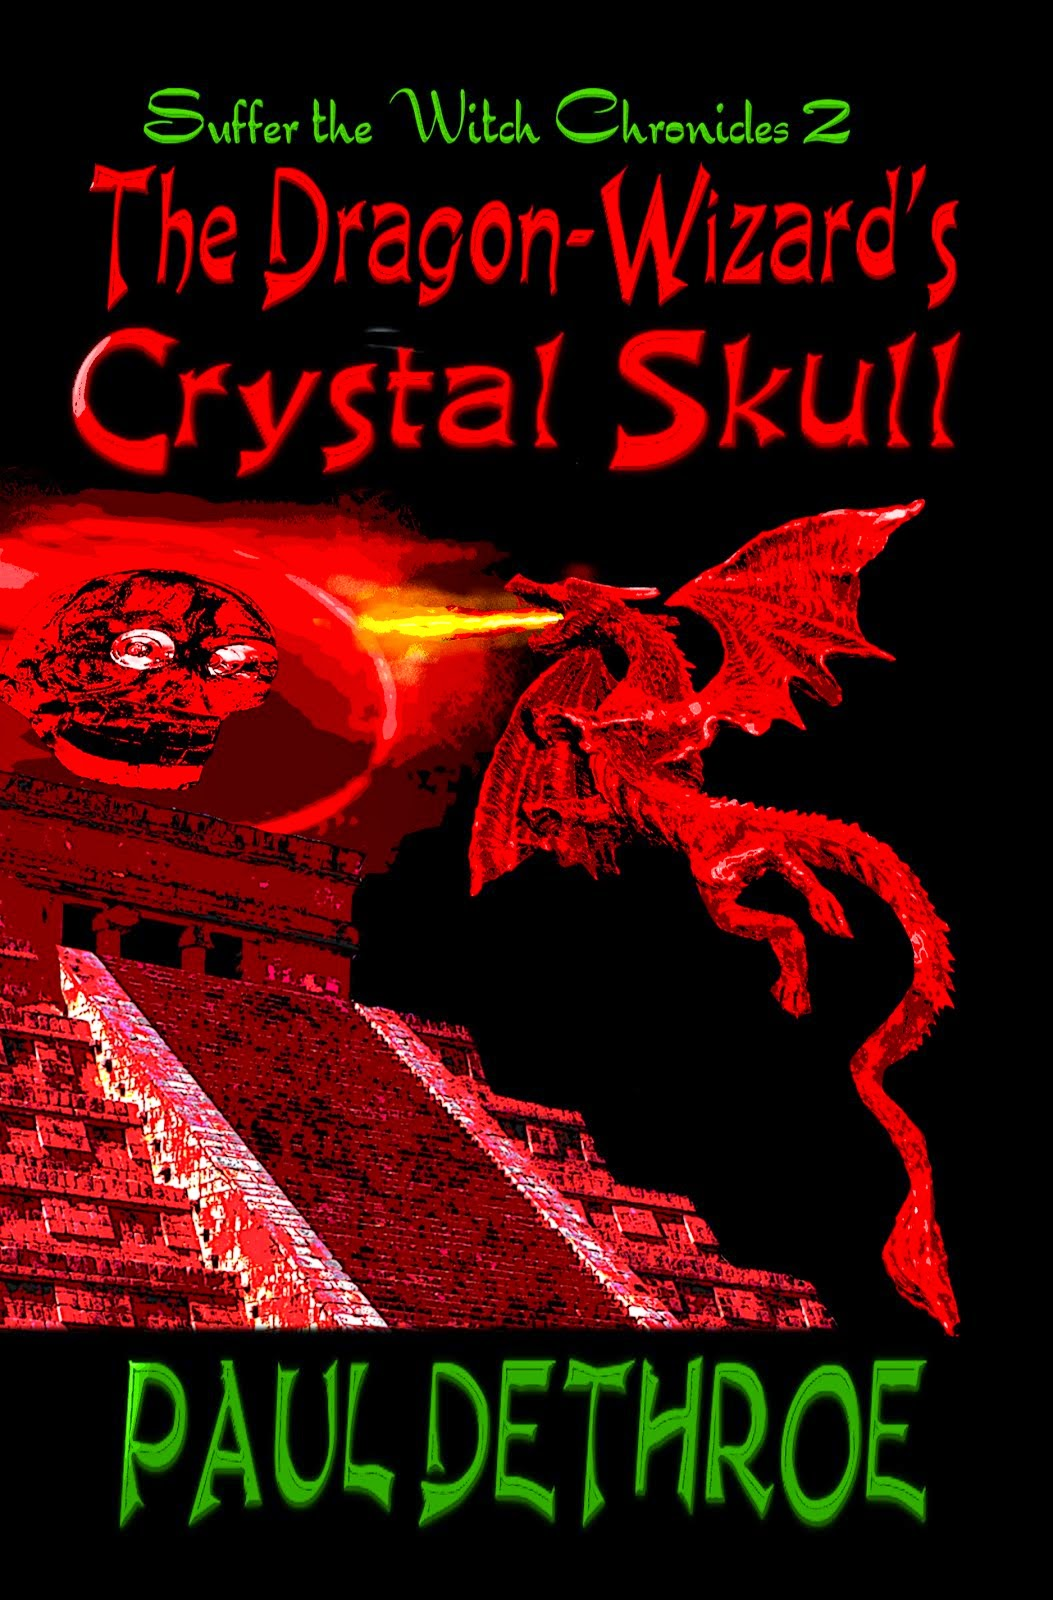 The Dragon-Wizard's Crystal Skull